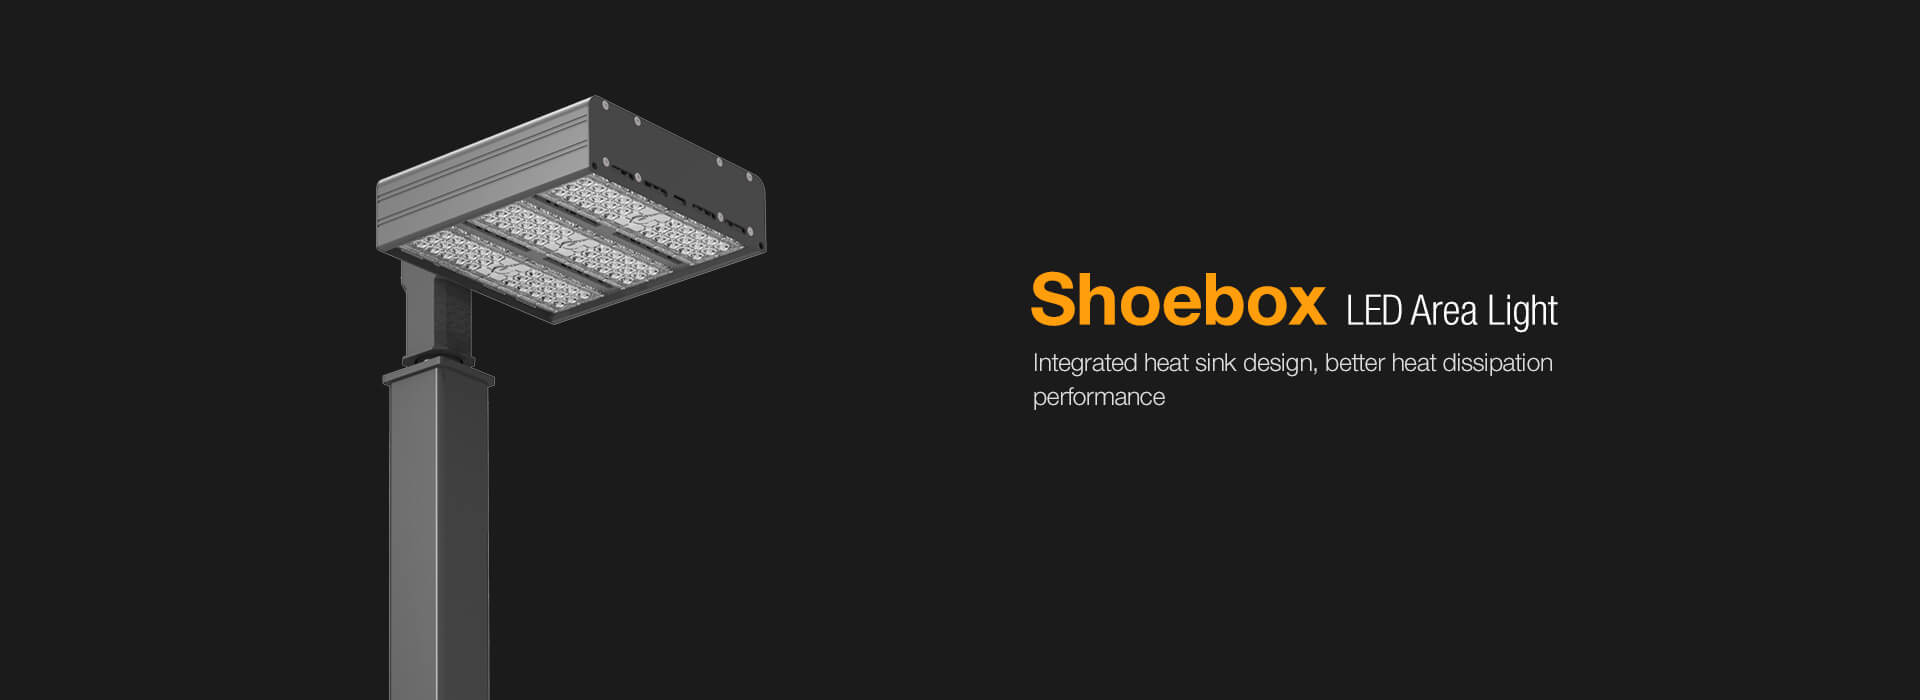 Shoebox LED Area Light